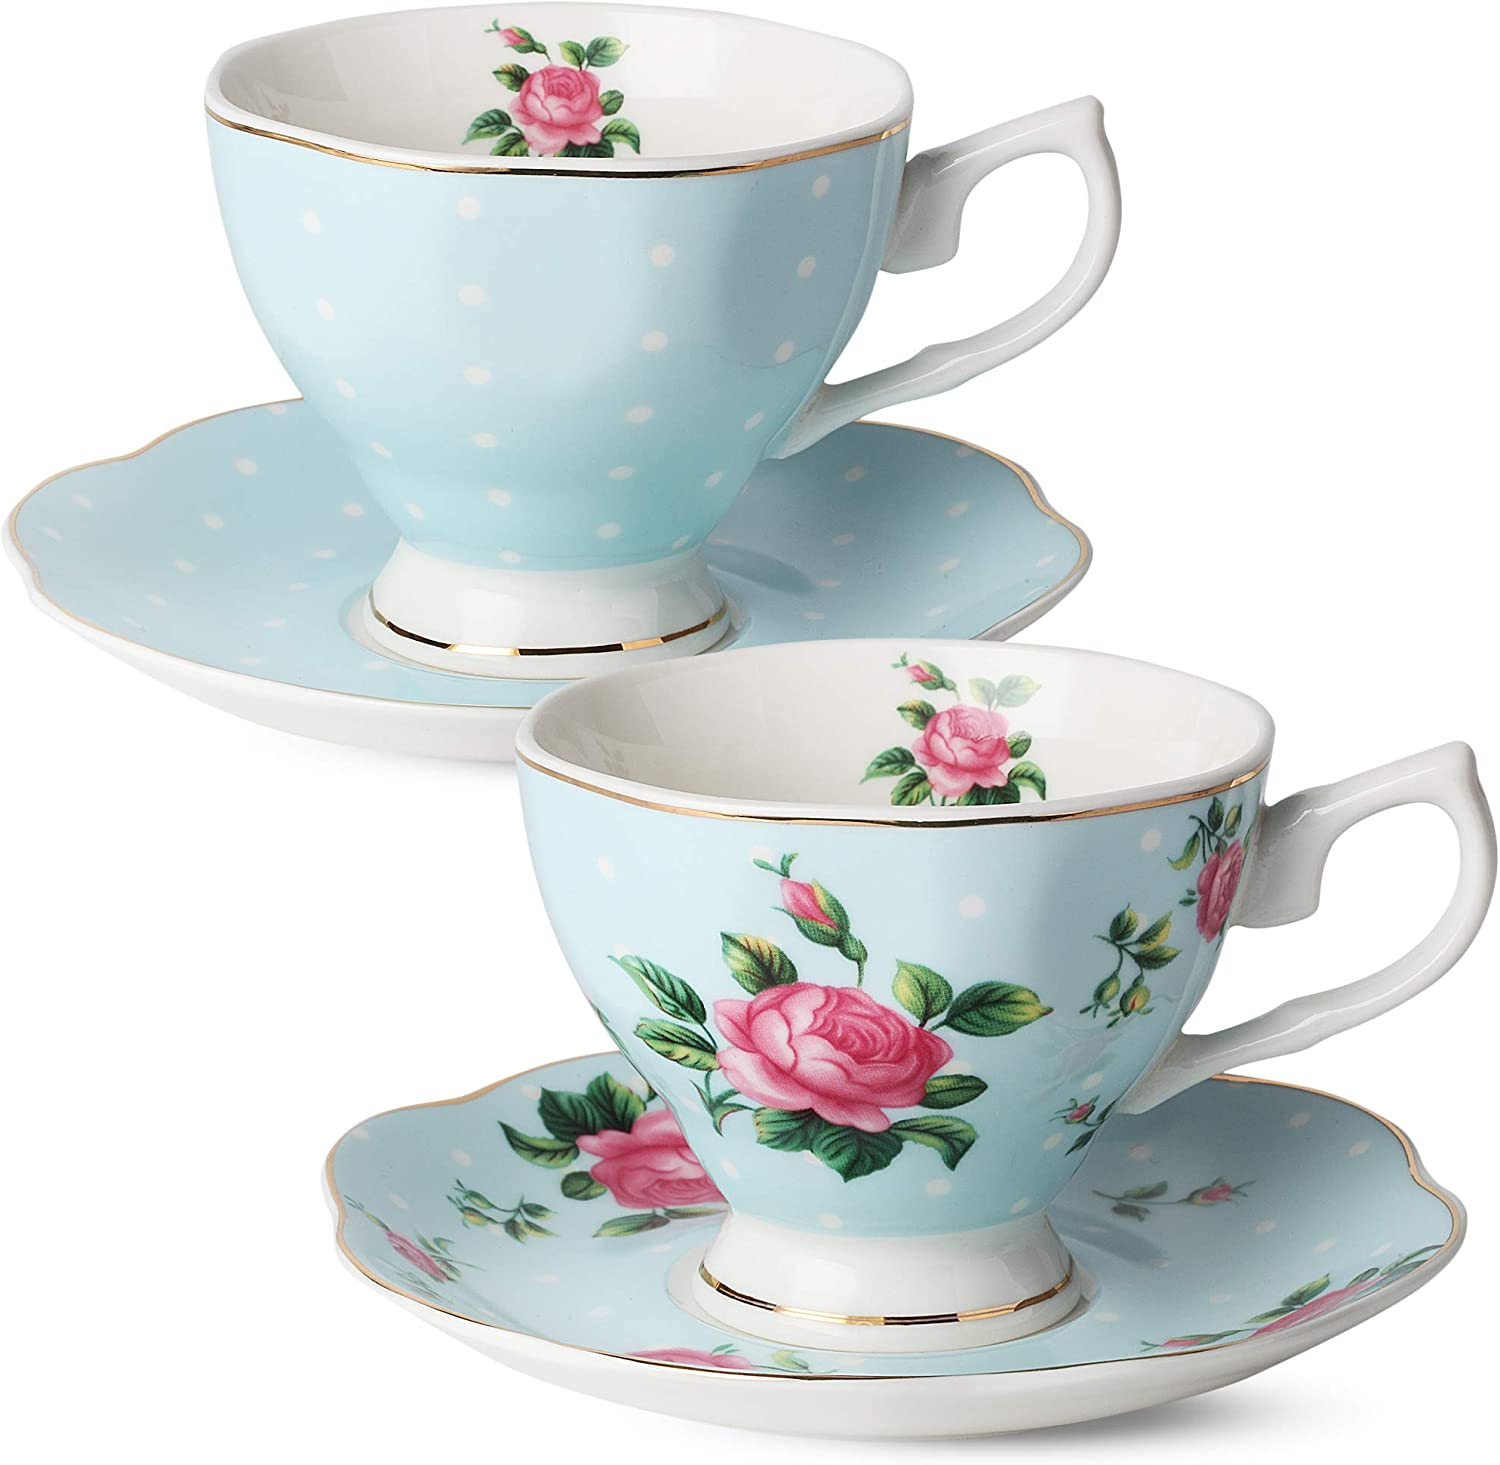 BTaT- Floral Tea Cups and Saucers, Set of 2 (Blue - 8 oz) with Gold Trim and Gift Box, Coffee Cups, Floral Tea Cup Set, British Tea Cups, Bone China Porcelain Tea Set, Tea Sets for Women, Latte Cups